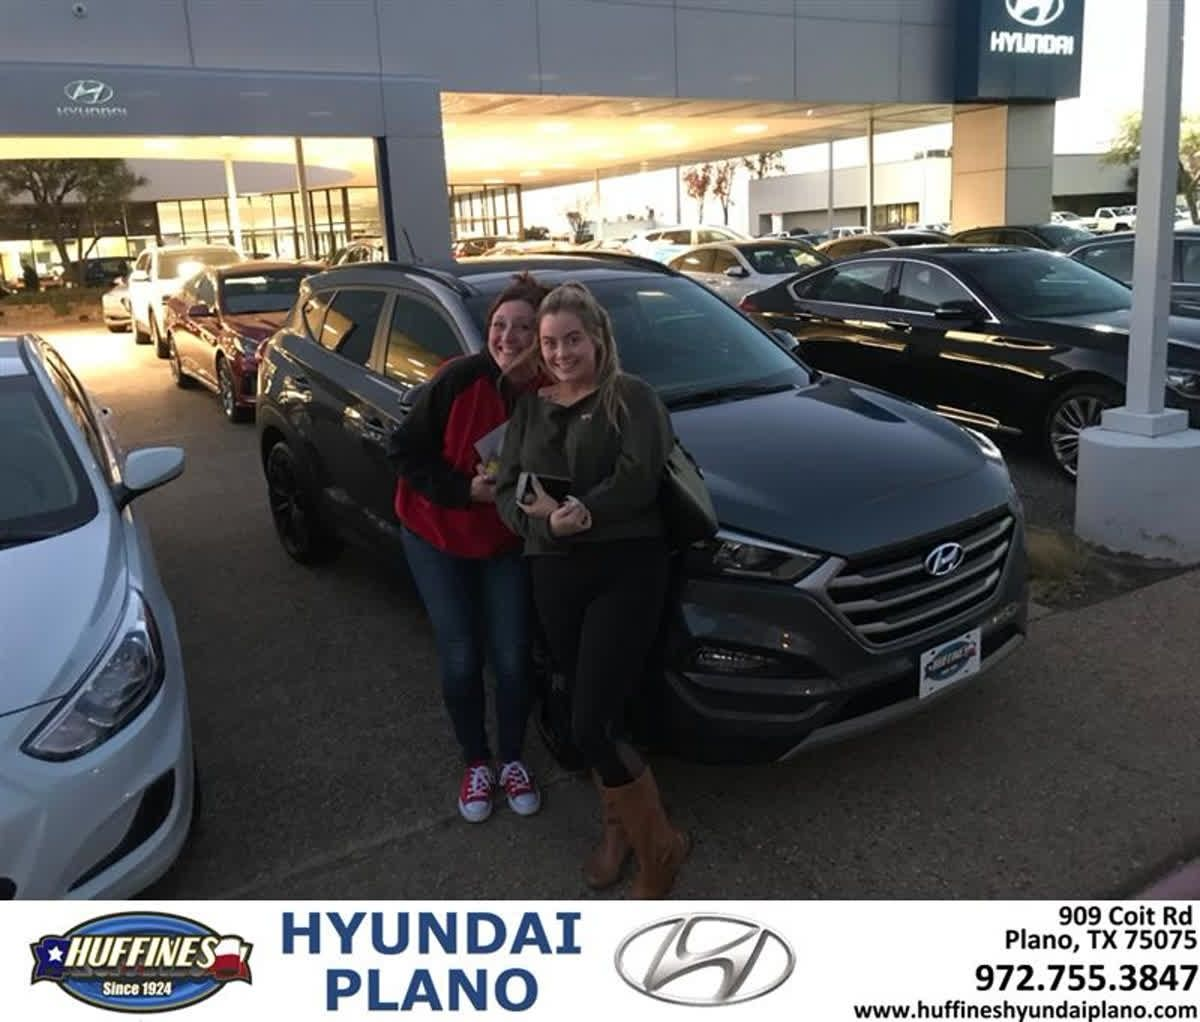 vehicles owned pre used mckinney tx htm in sedan deals hyundai featured elantra huffines plano car